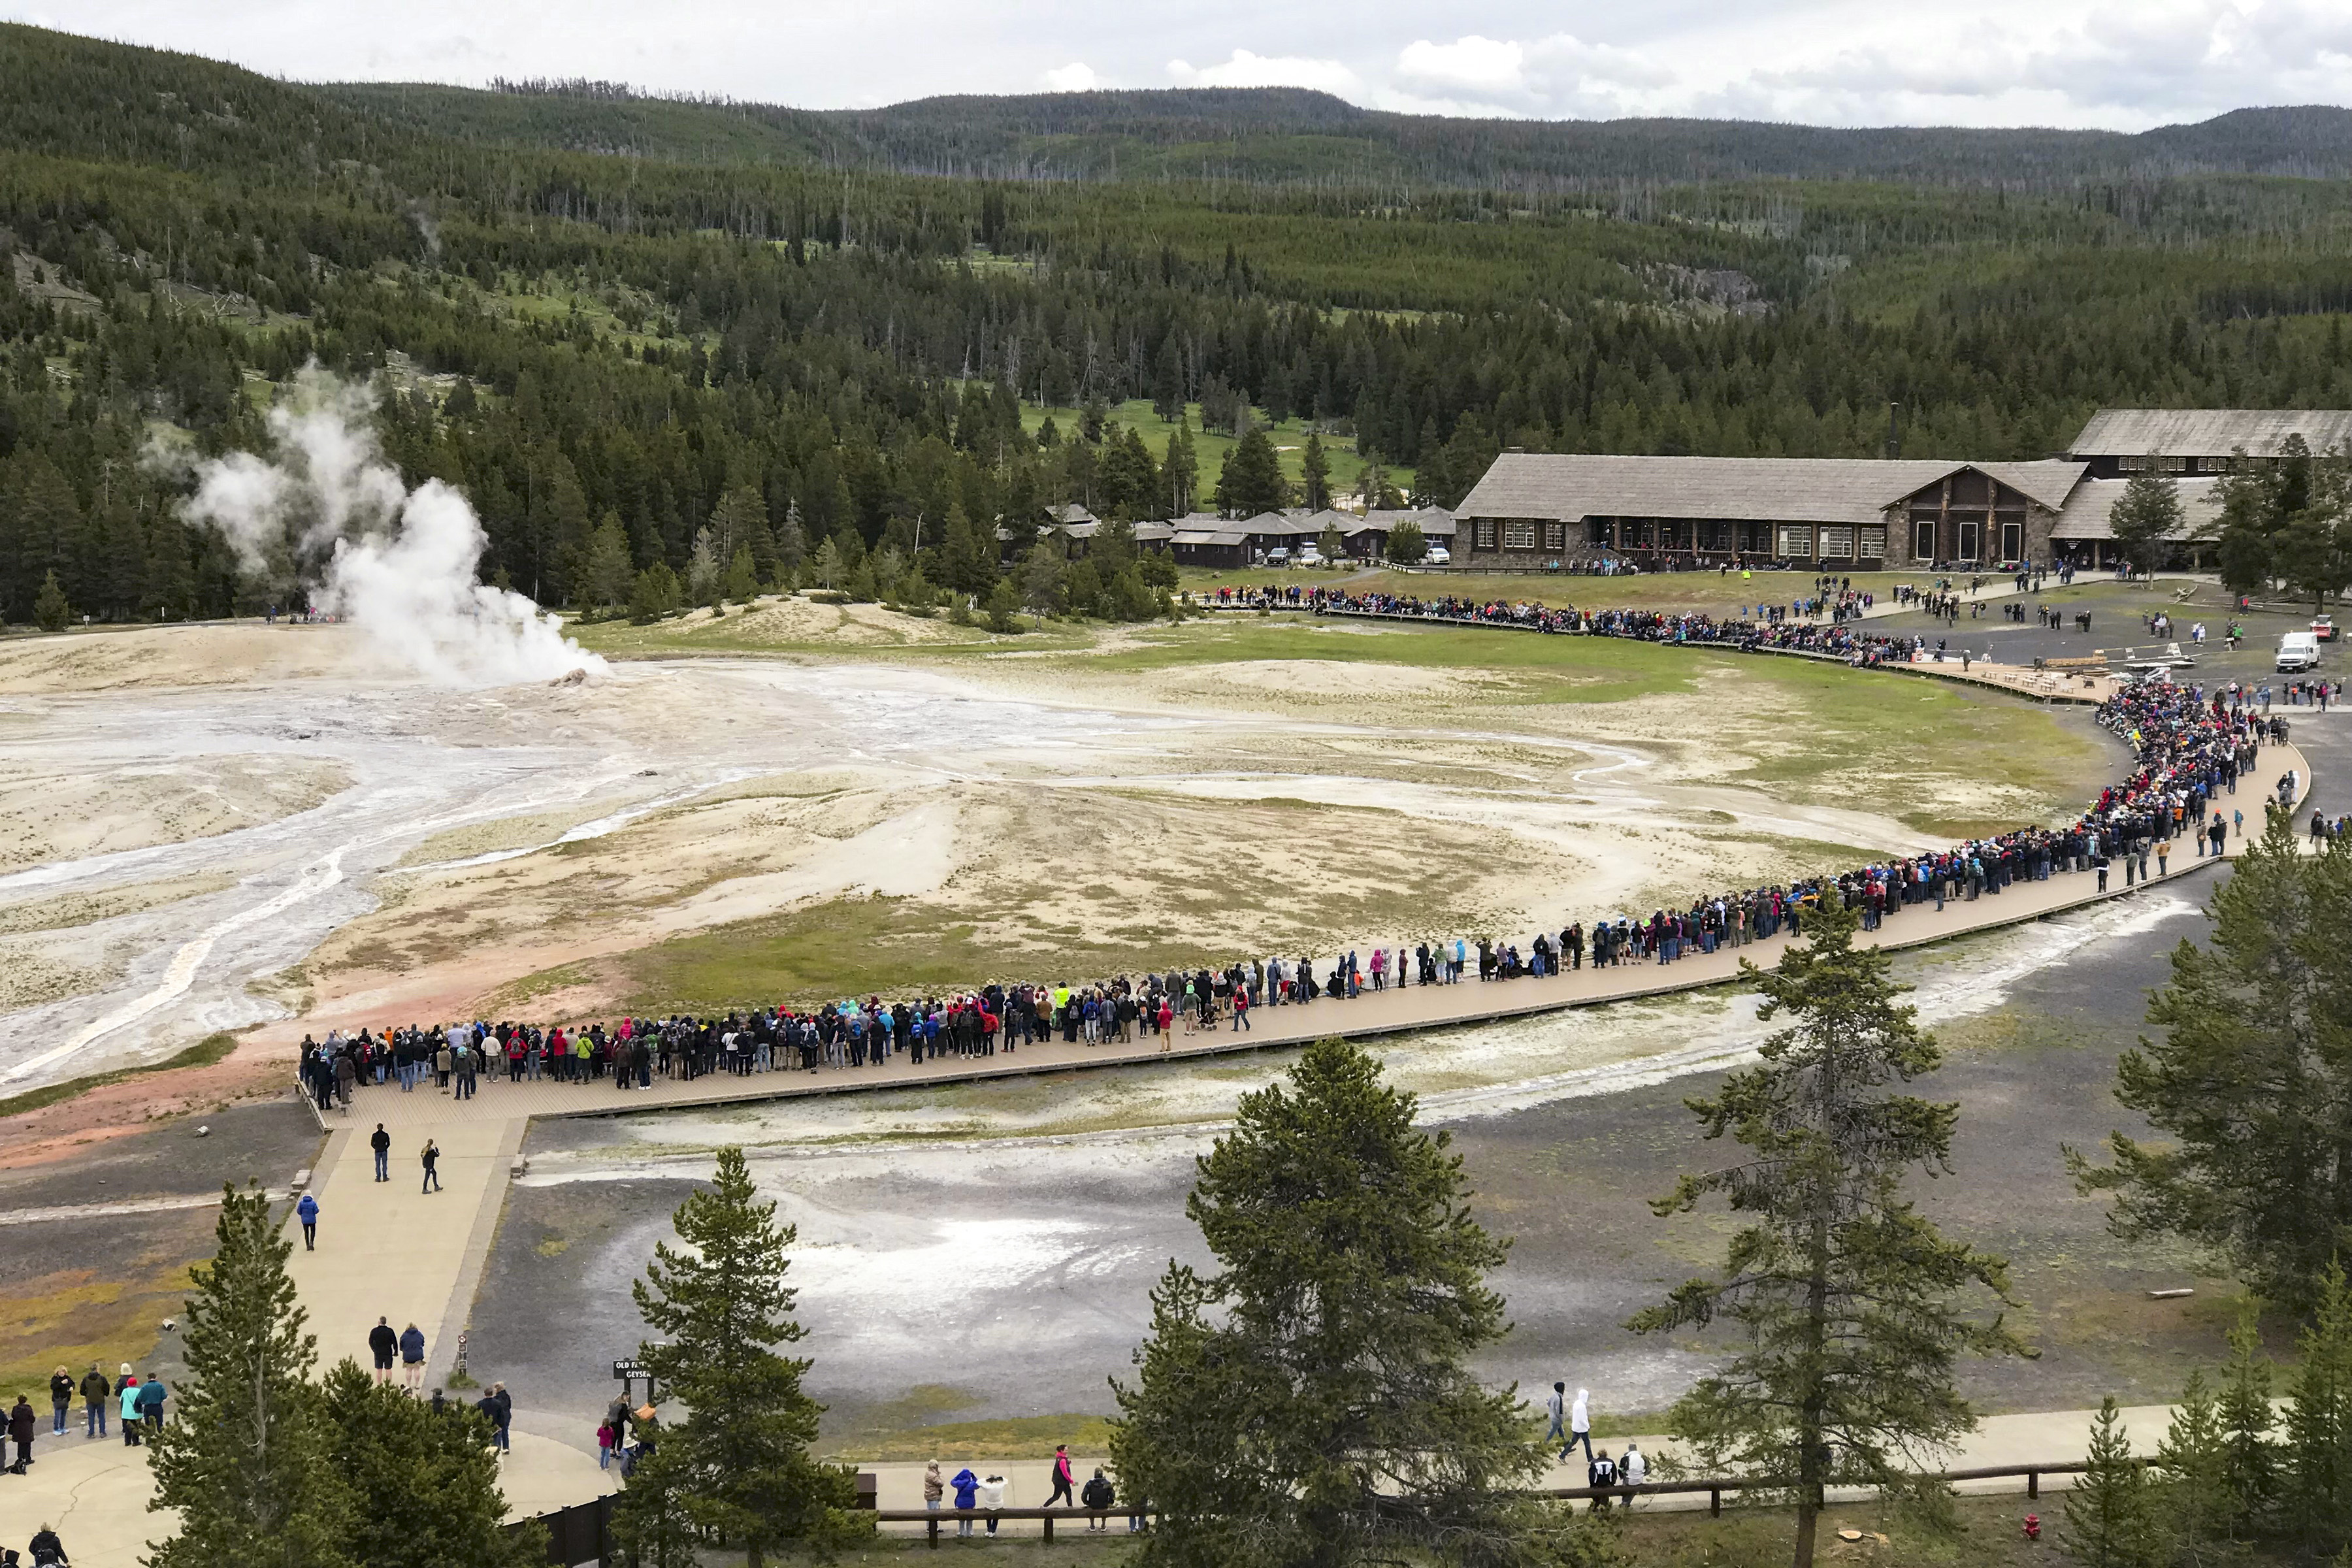 Yellowstone National Park visitation statistics on Memorial Day weekend  2021 - Yellowstone National Park (U.S. National Park Service)